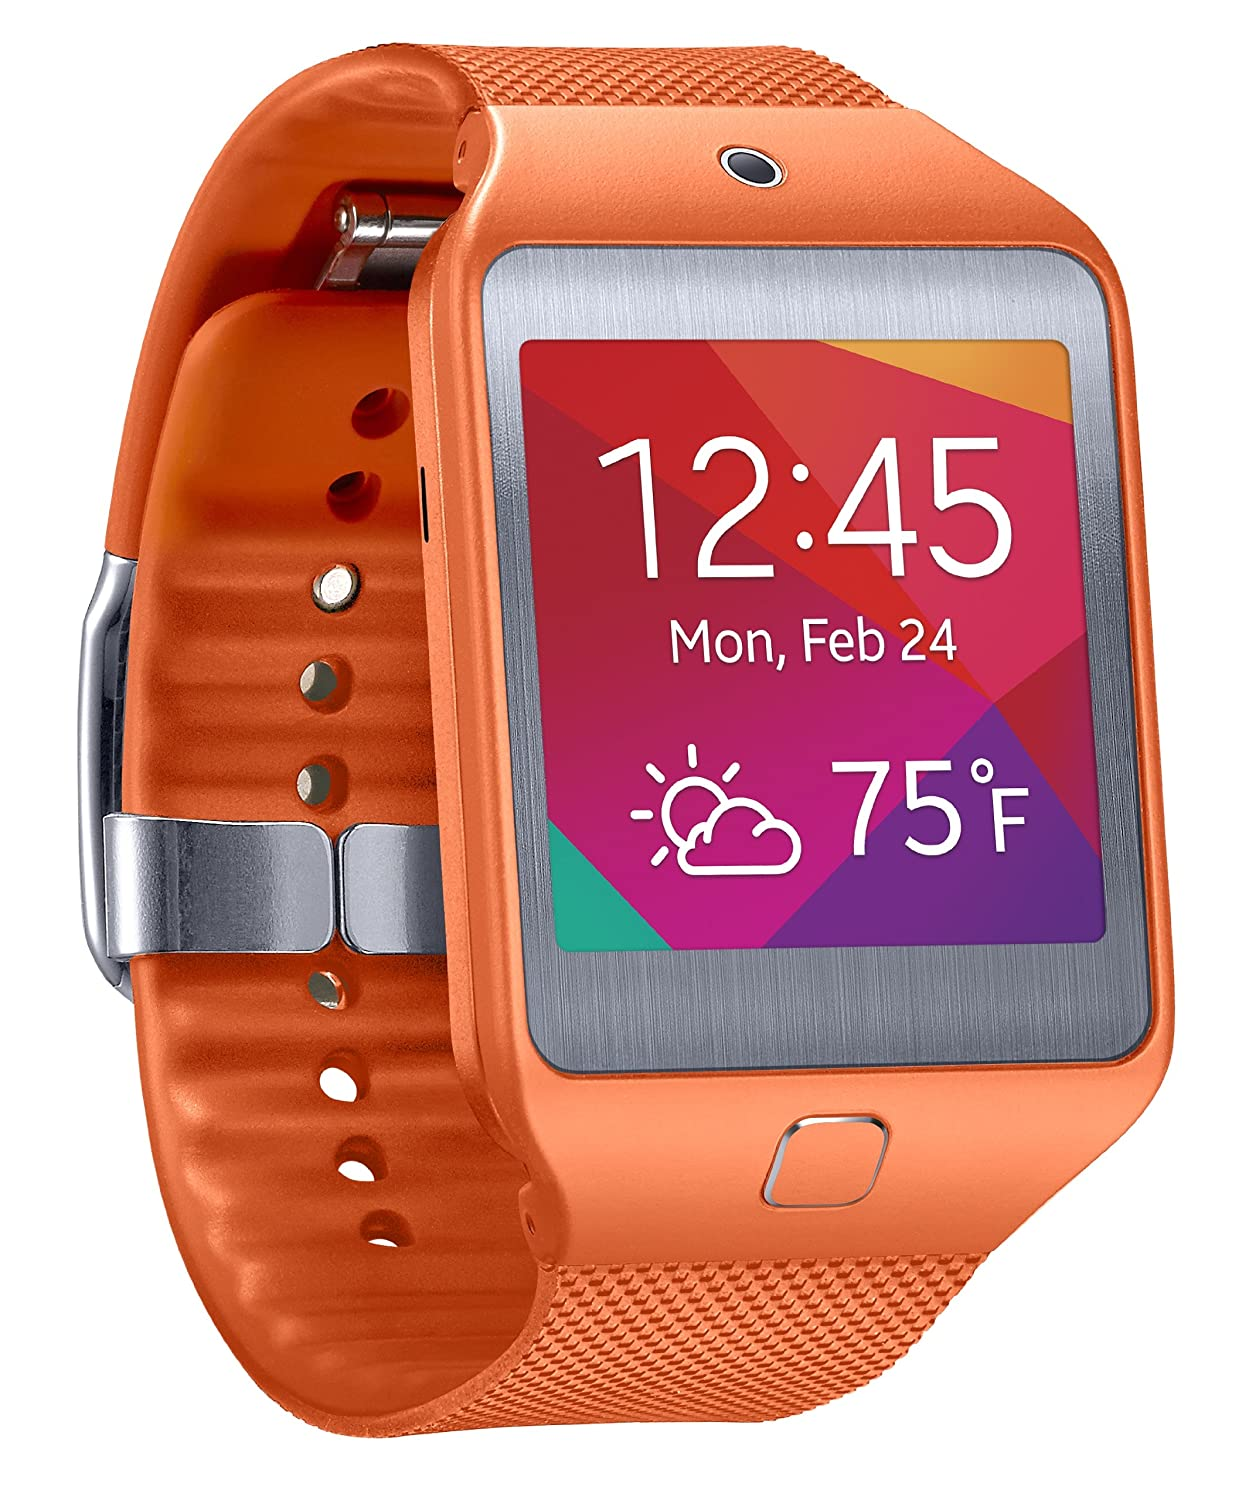 Samsung Gear 2 Neo Smartwatch - Orange (US Warranty) (Discontinued by Manufacturer)